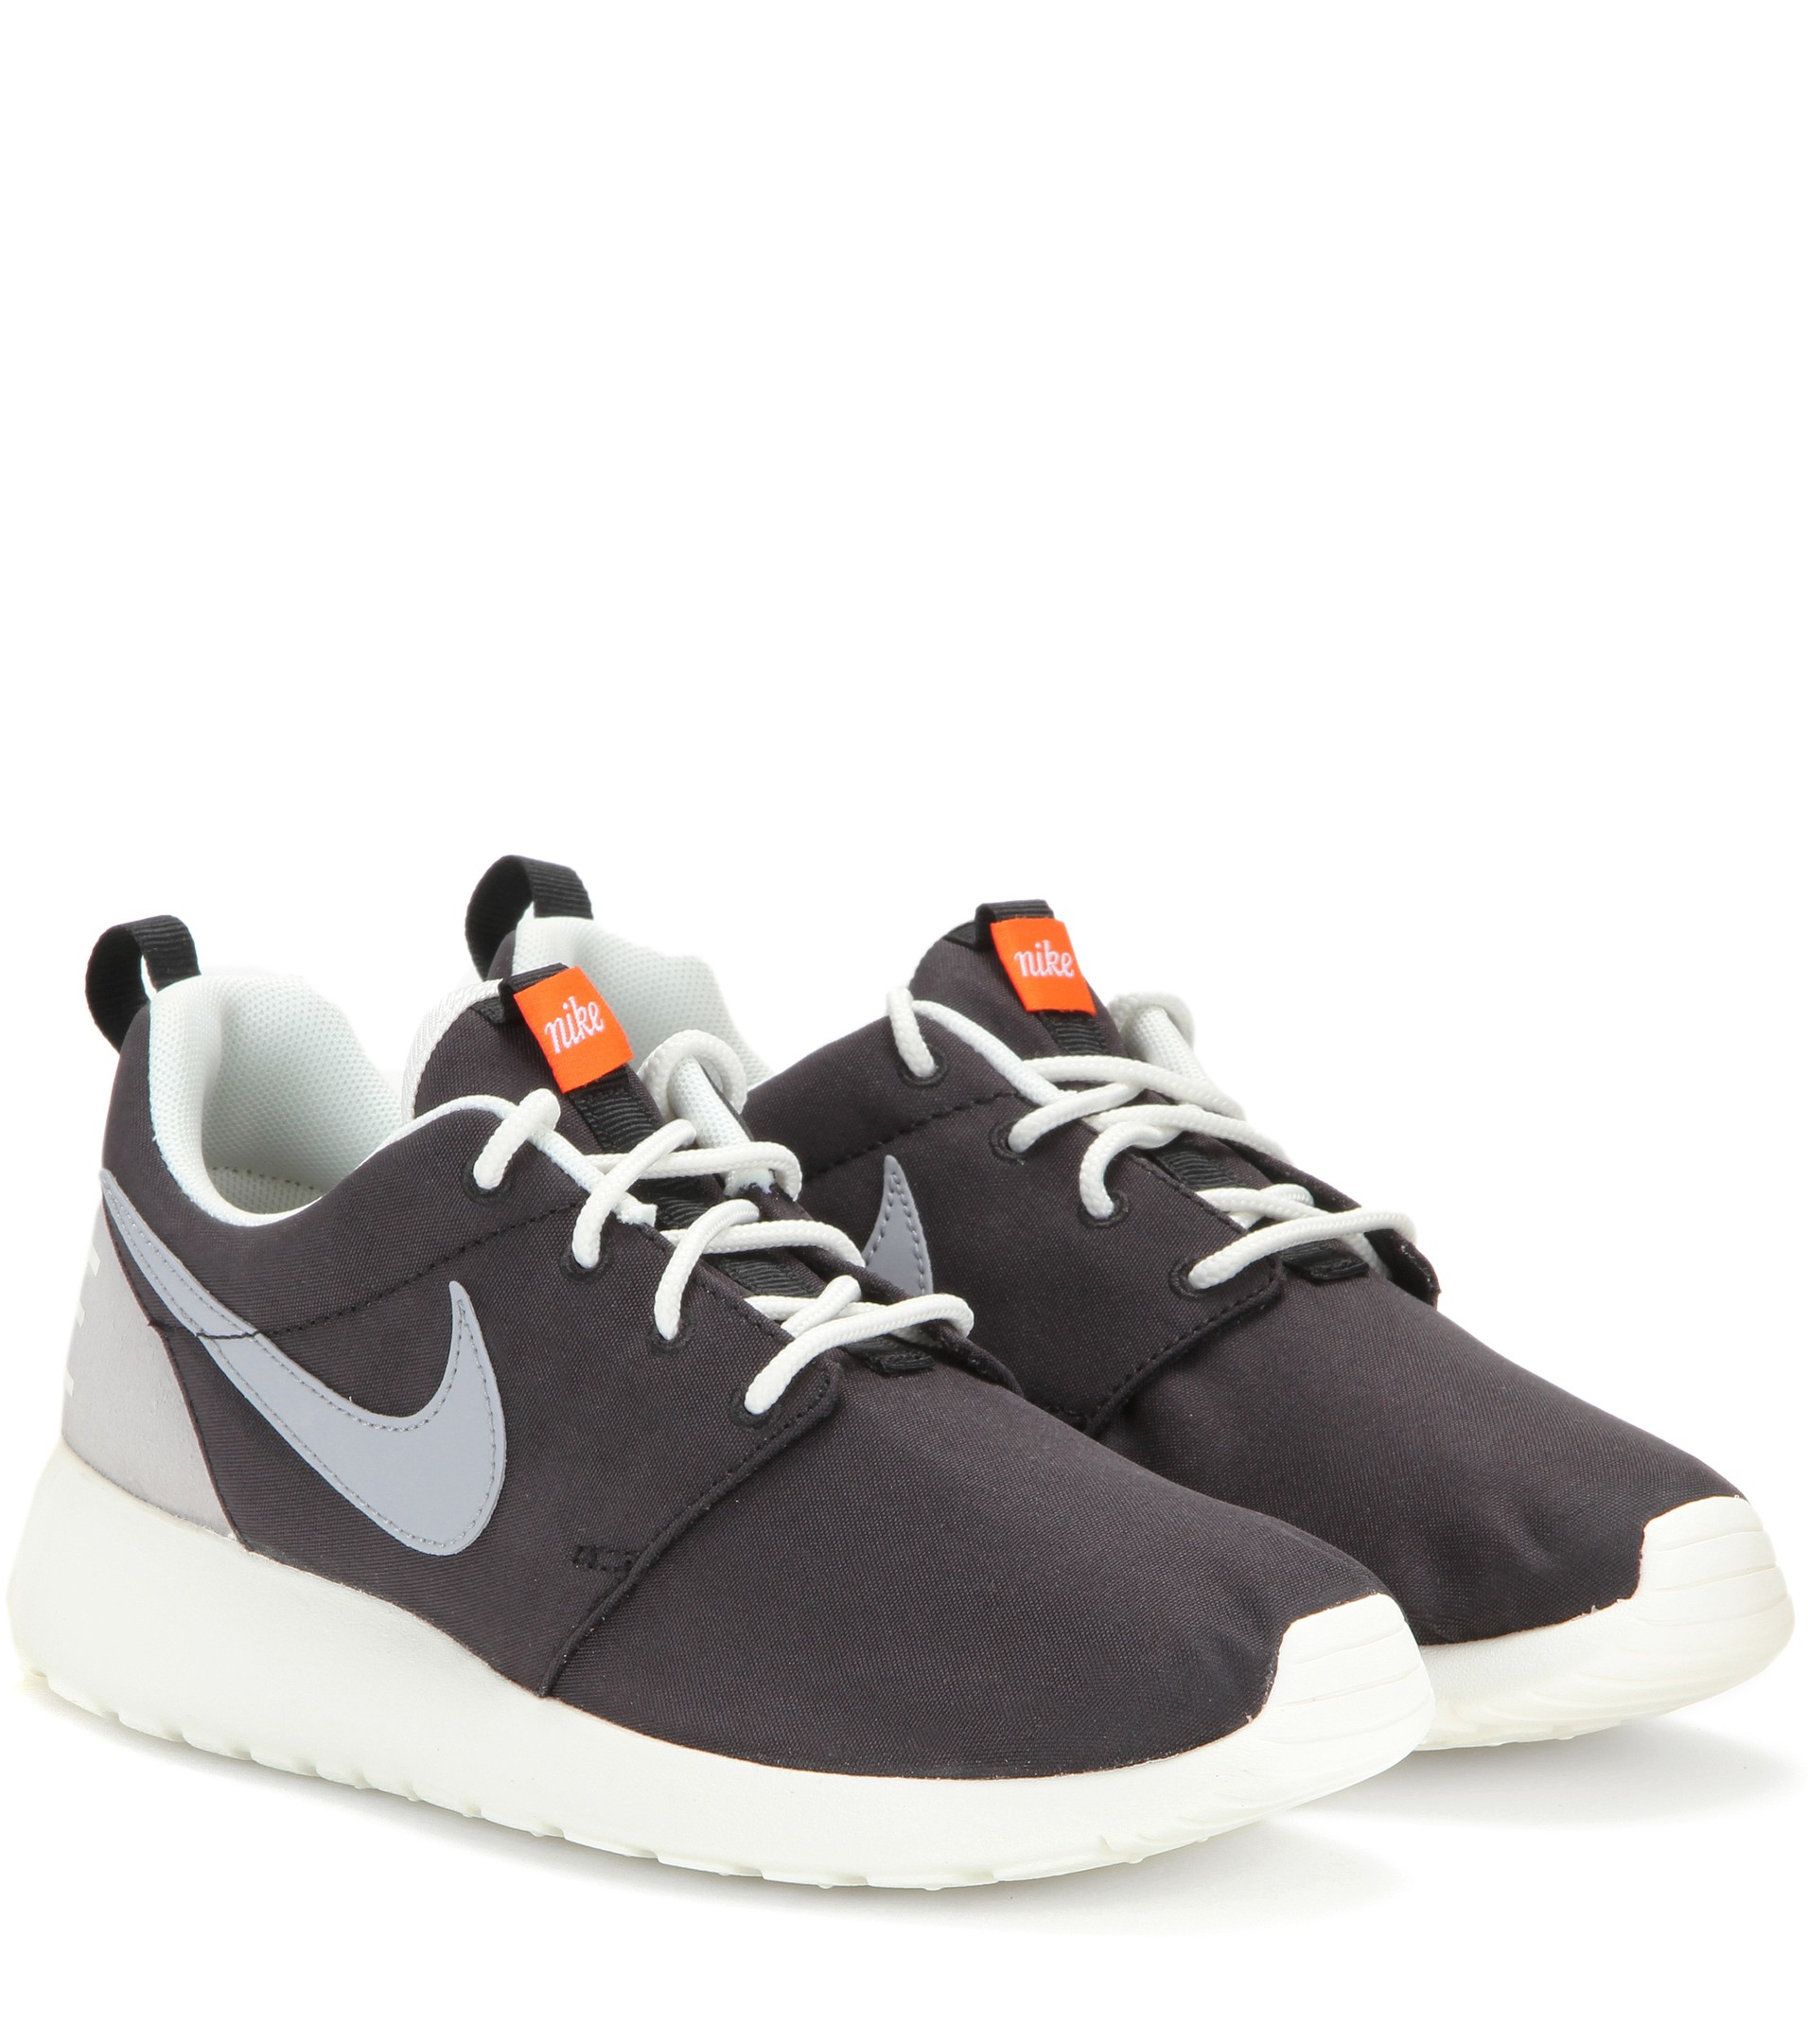 Lyst - Nike Roshe One Retro Sneakers in Gray